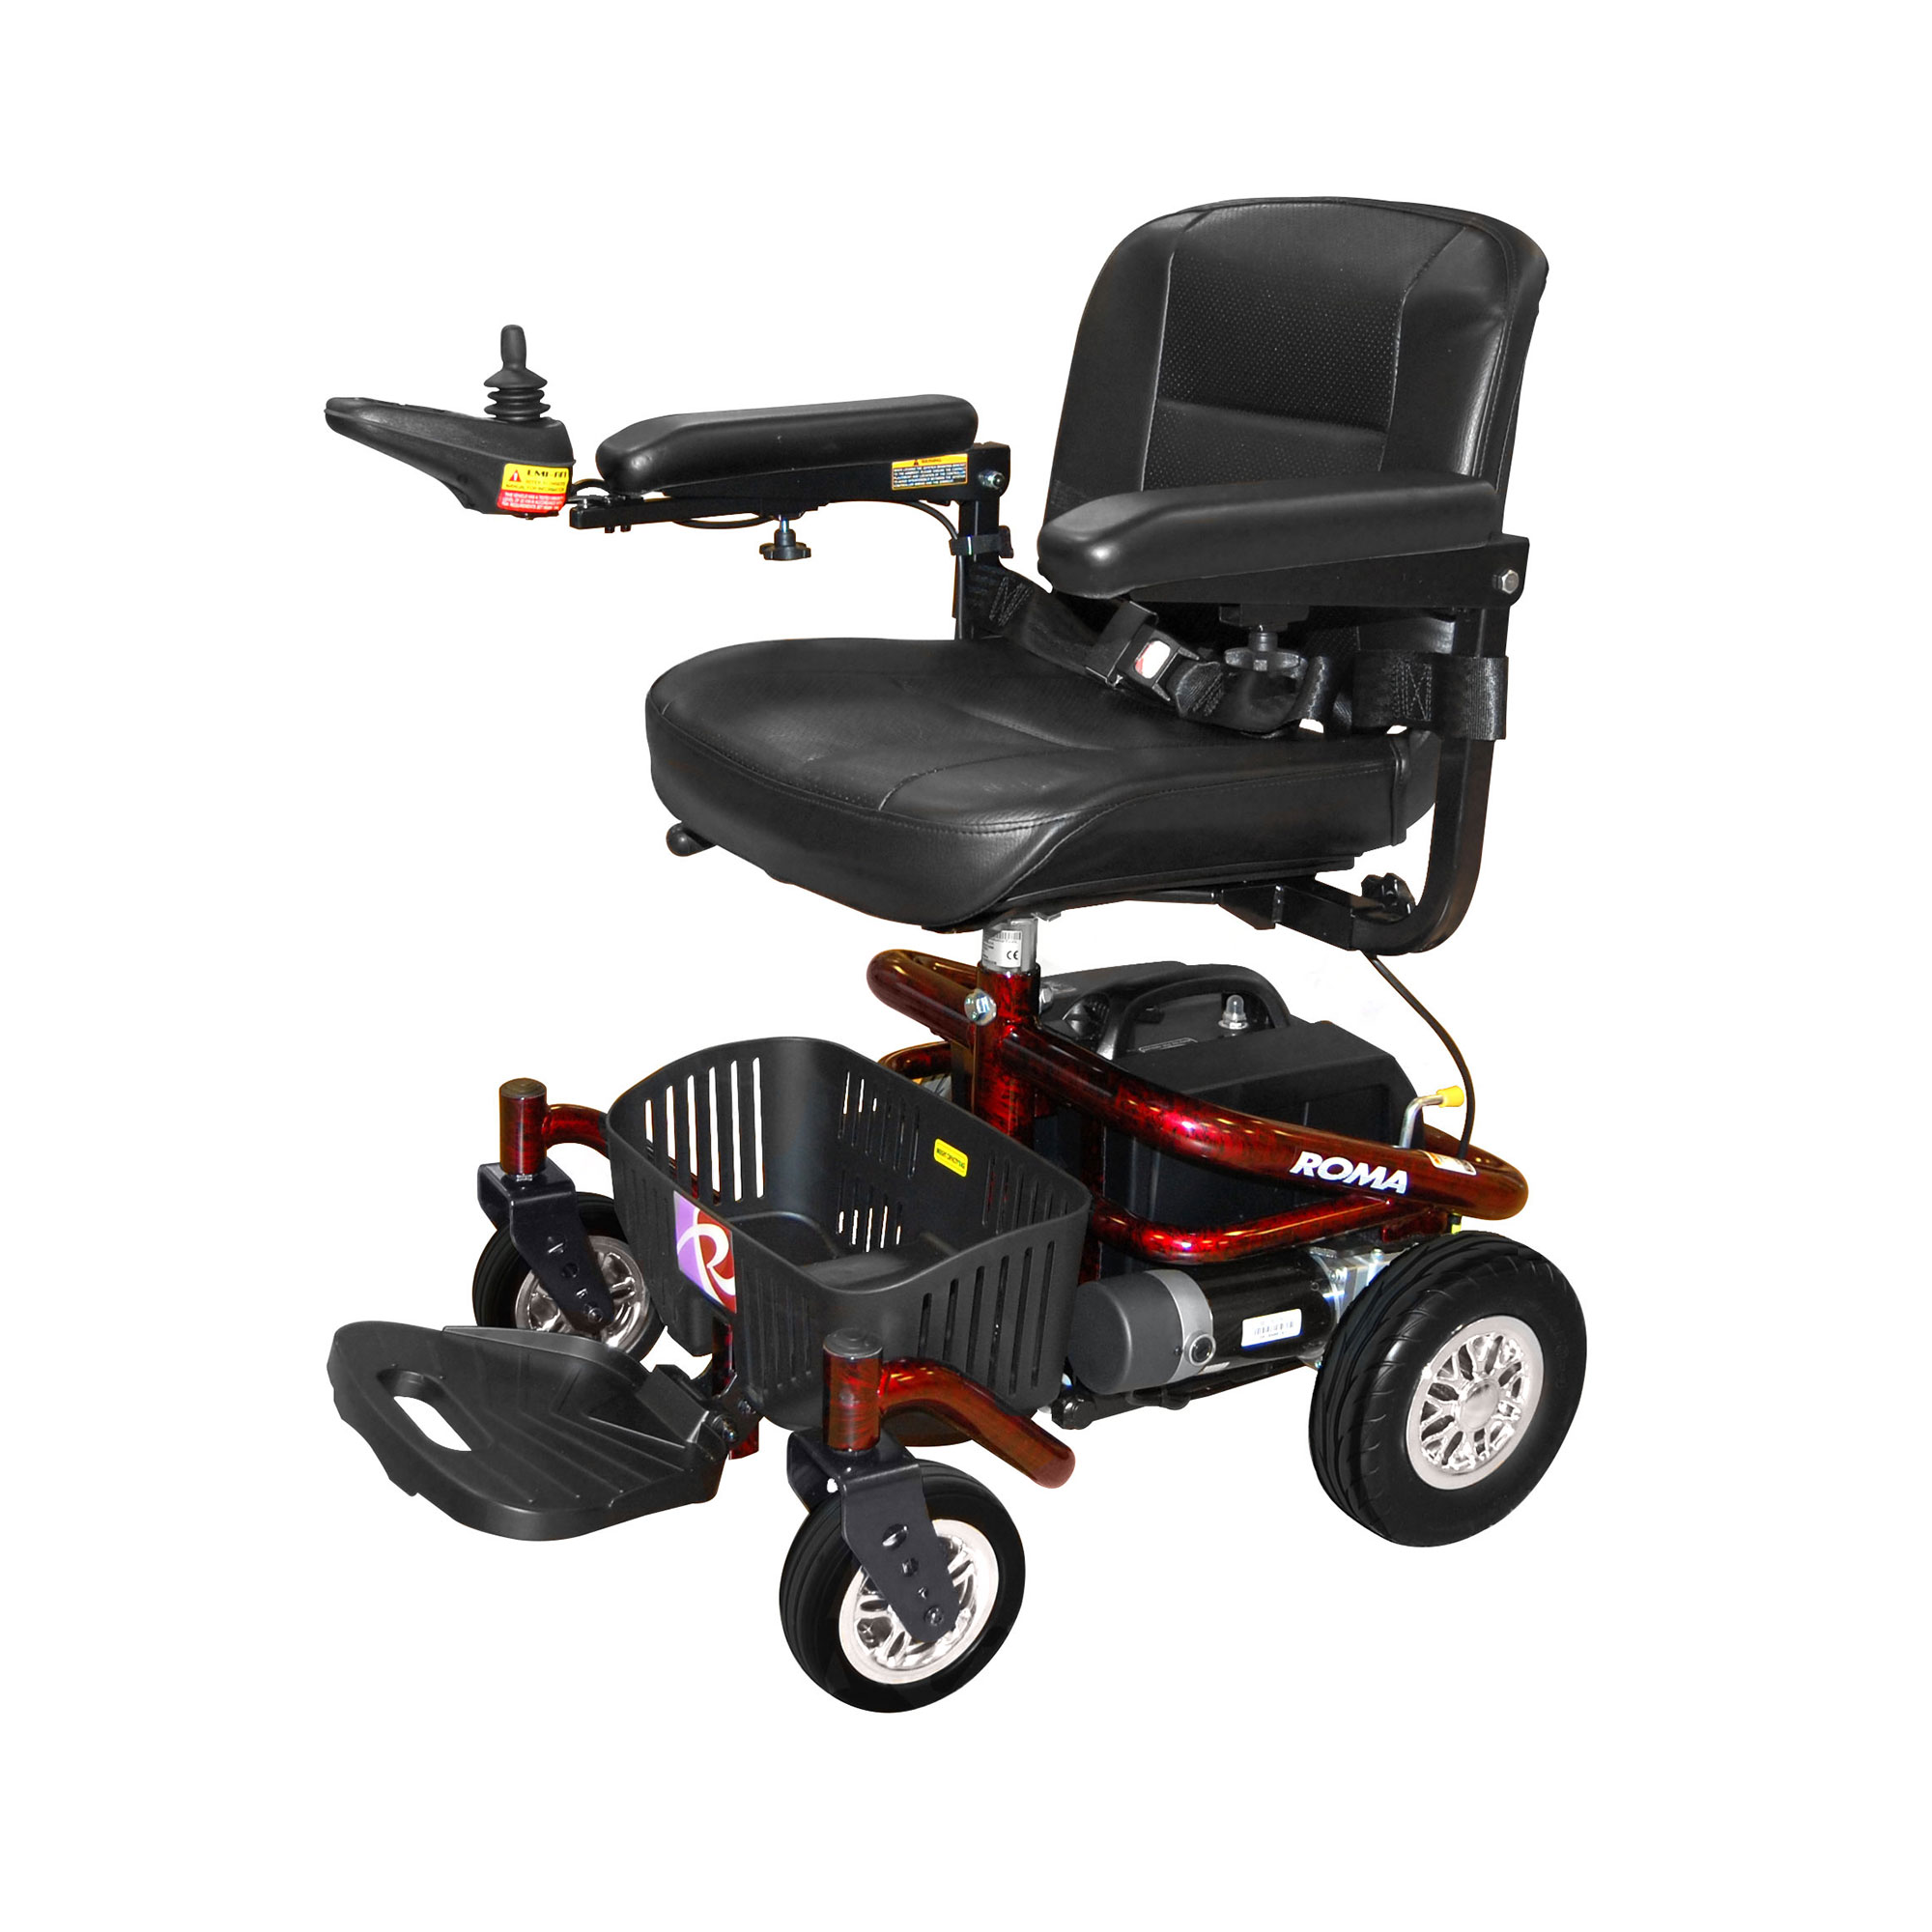 Roma Reno Ii Power Chair Roma Medical